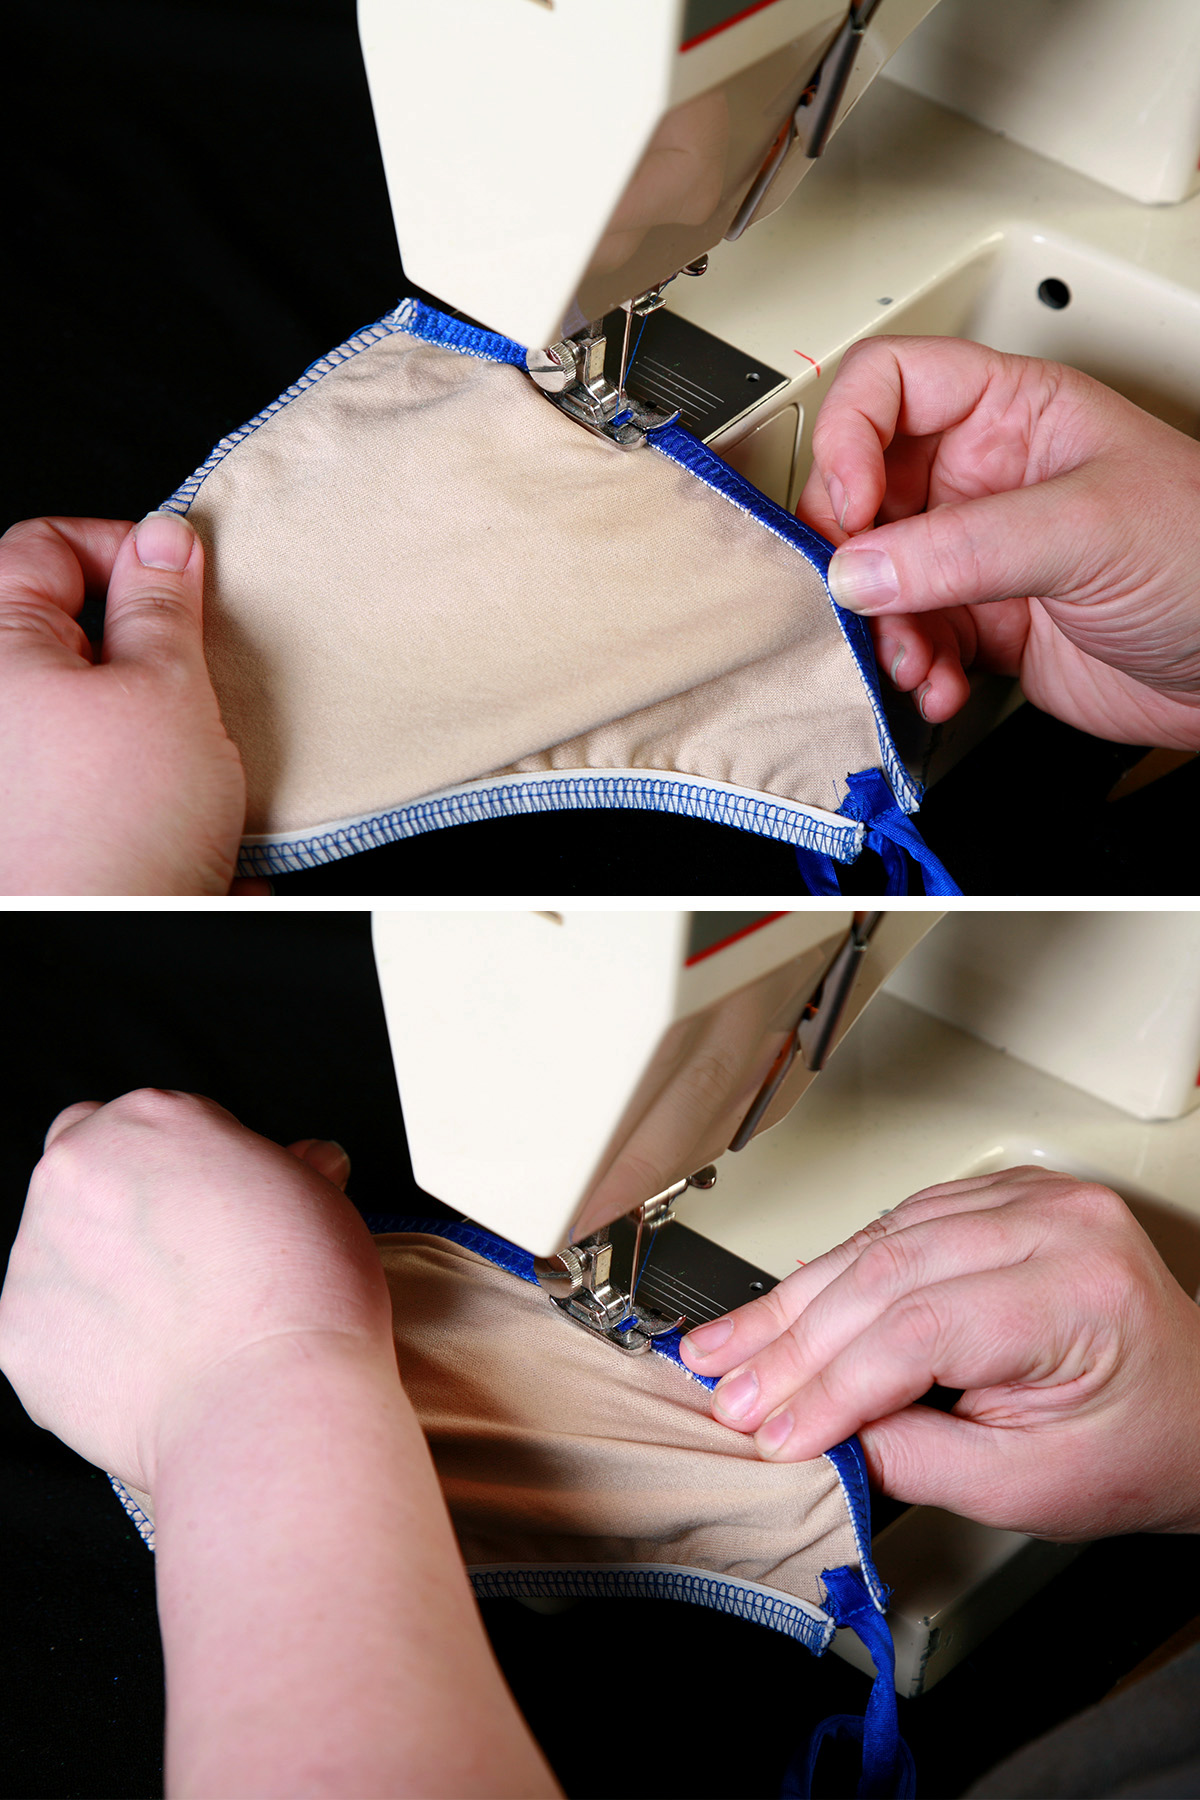 A two part image showing the elastic being folded over and stitched down, as described in the post.